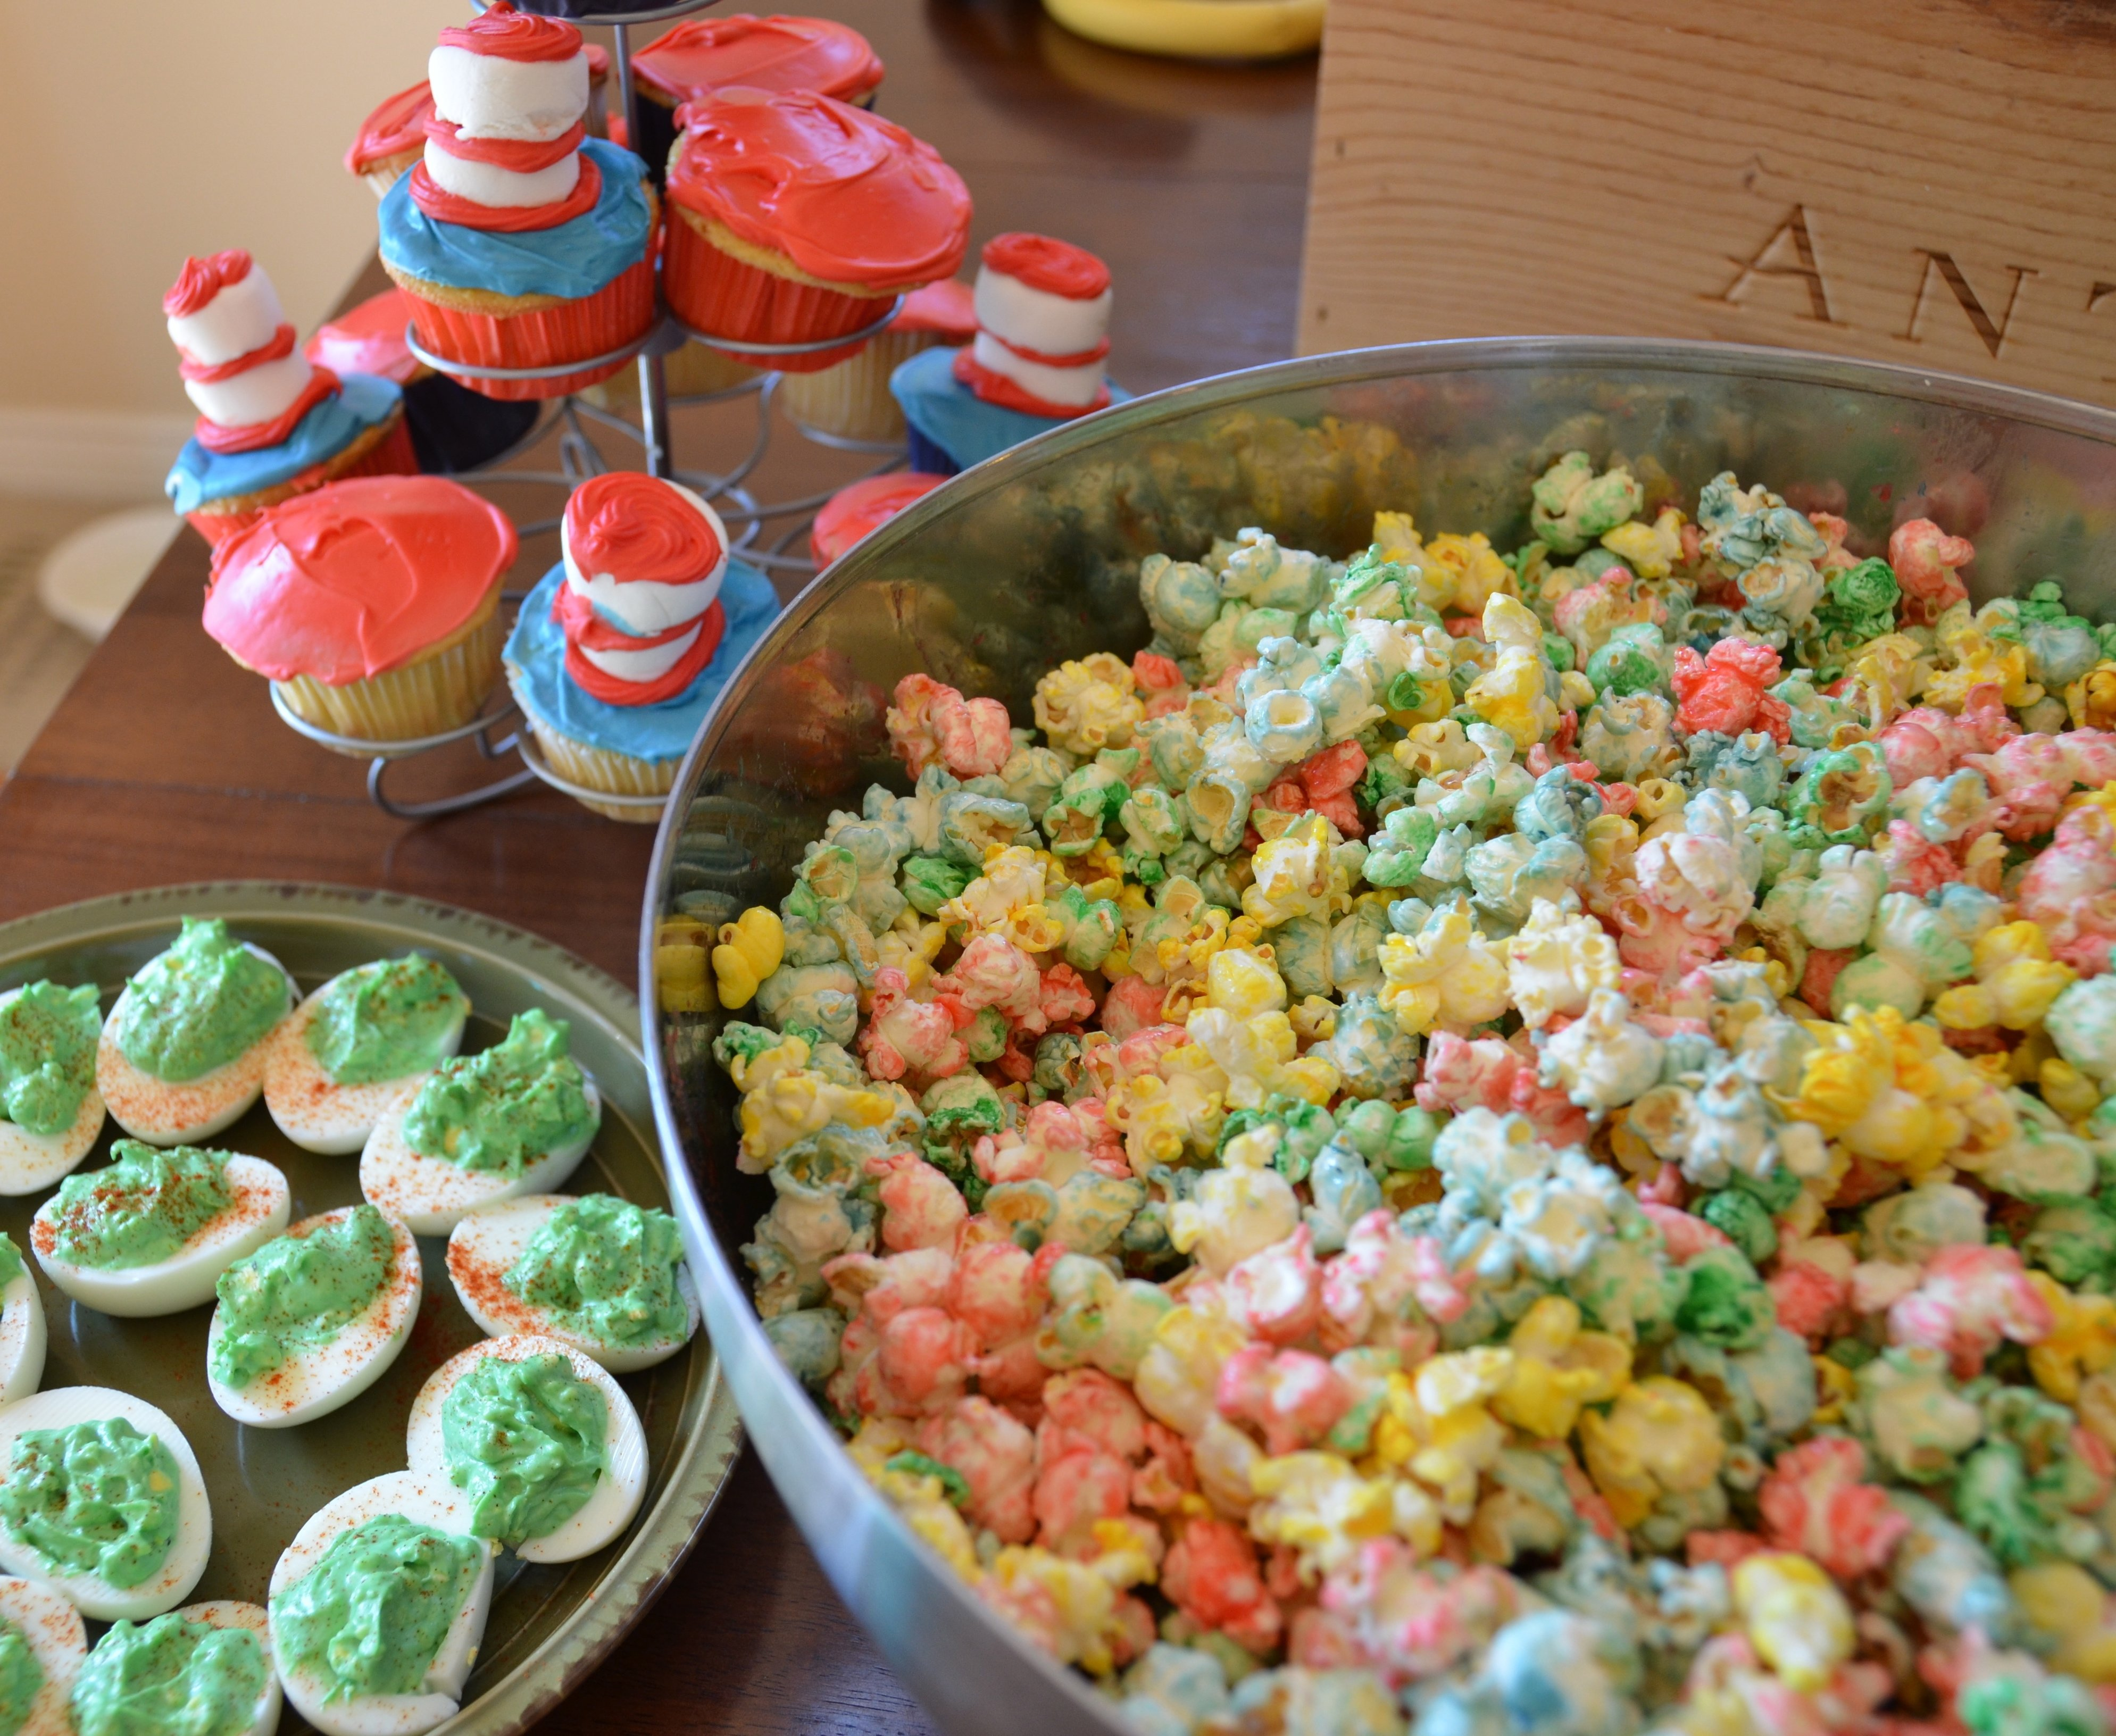 10 Attractive Baby Shower Food Ideas For A Boy photo dr seuss party food image 1 2020